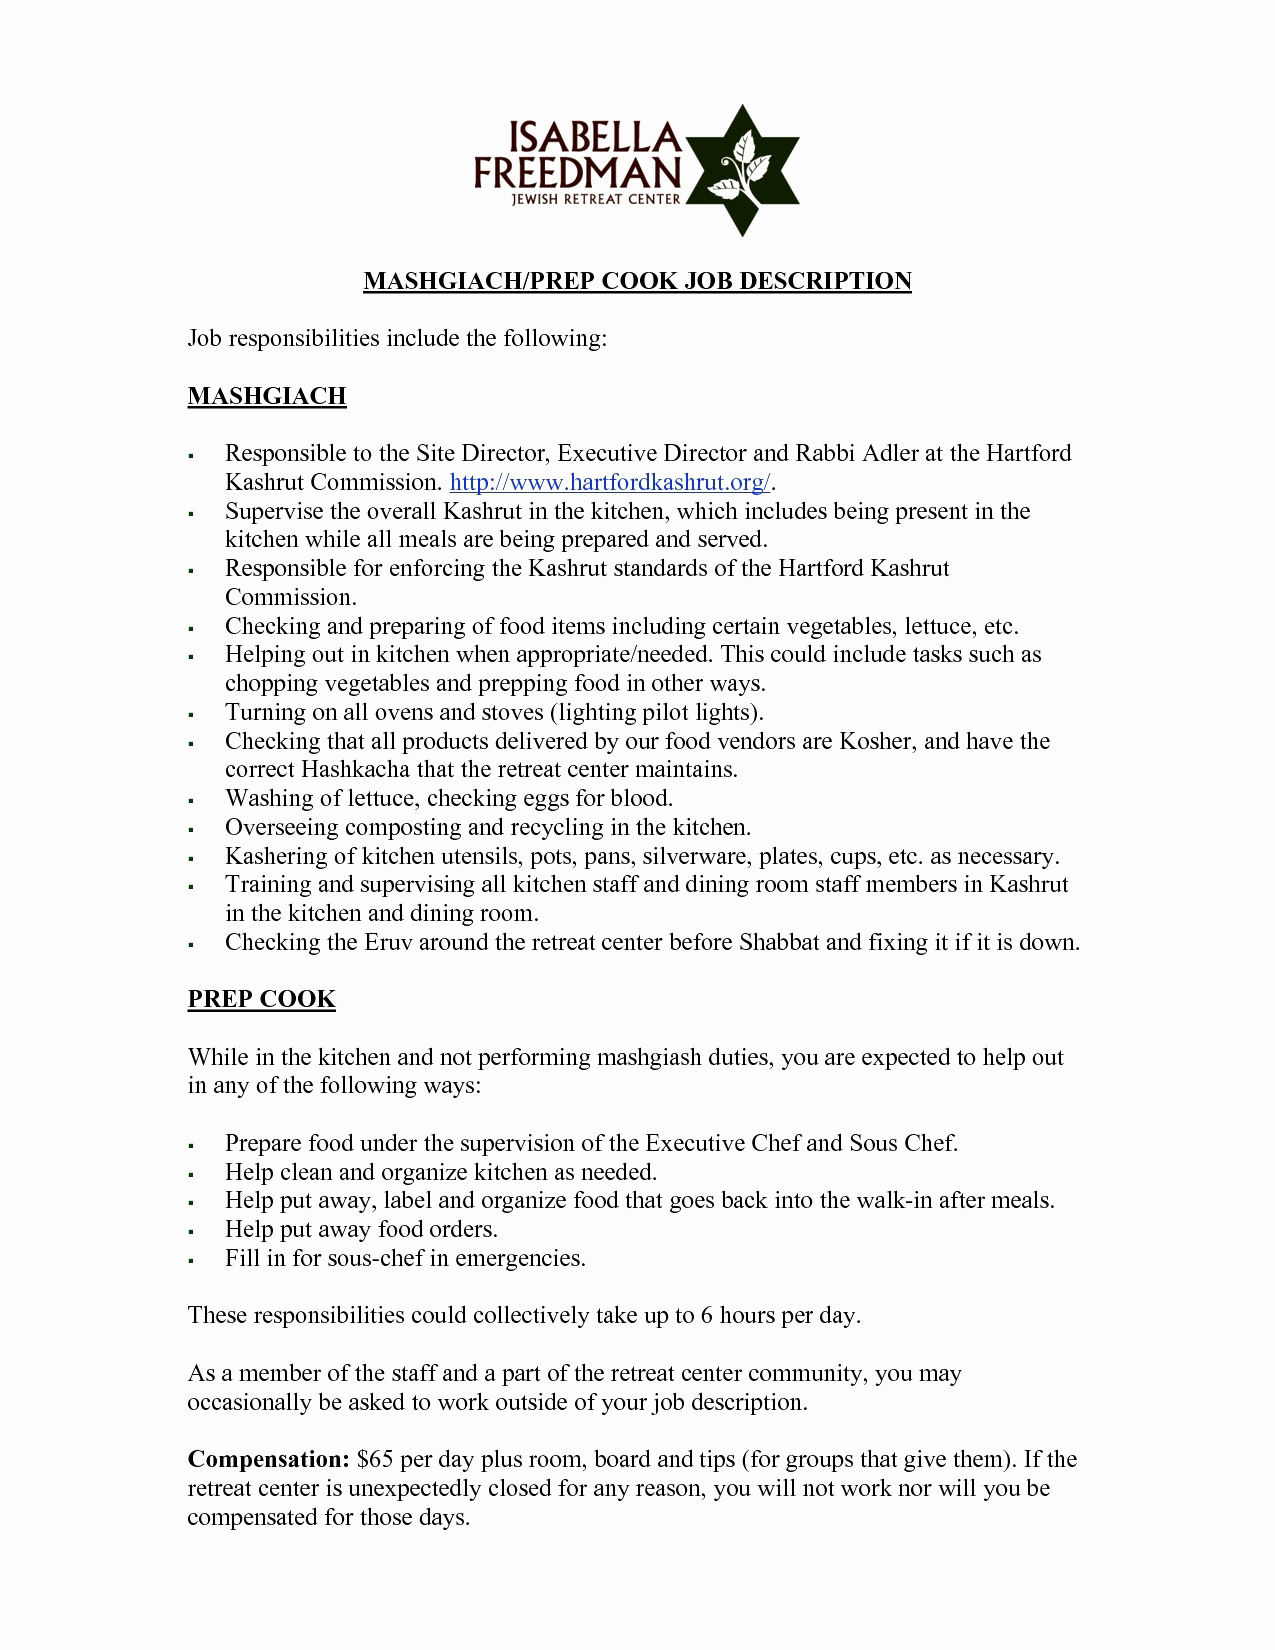 Basic Cover Letter Template Free - Basic Resume Outline Unique Resume and Cover Letter Template Fresh